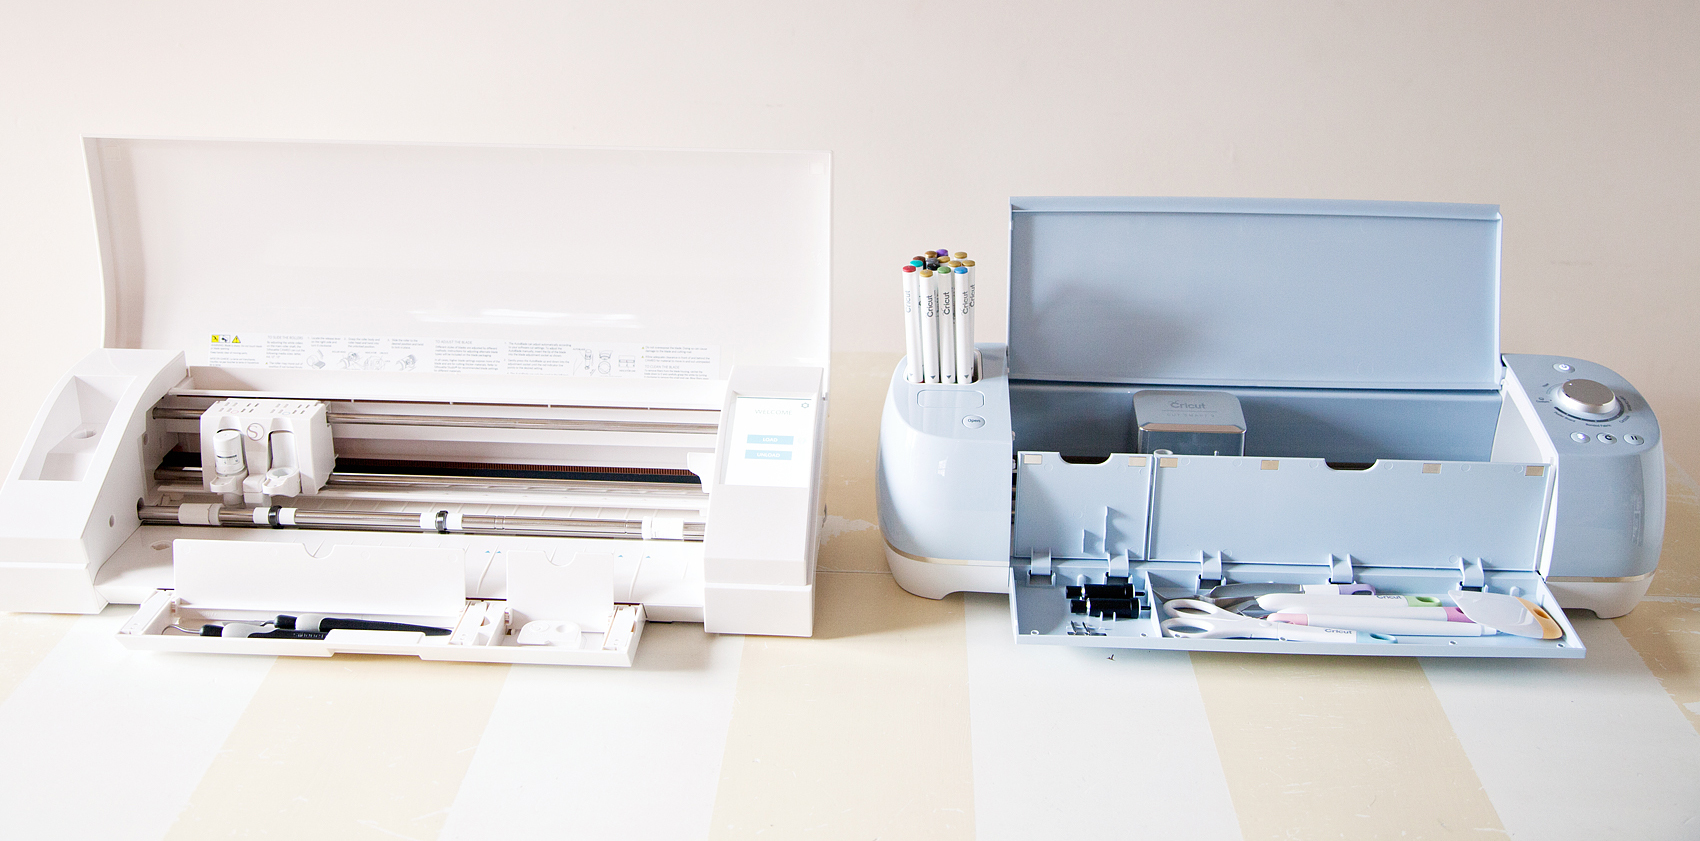 Tool storage in the Cricut and Silhouette